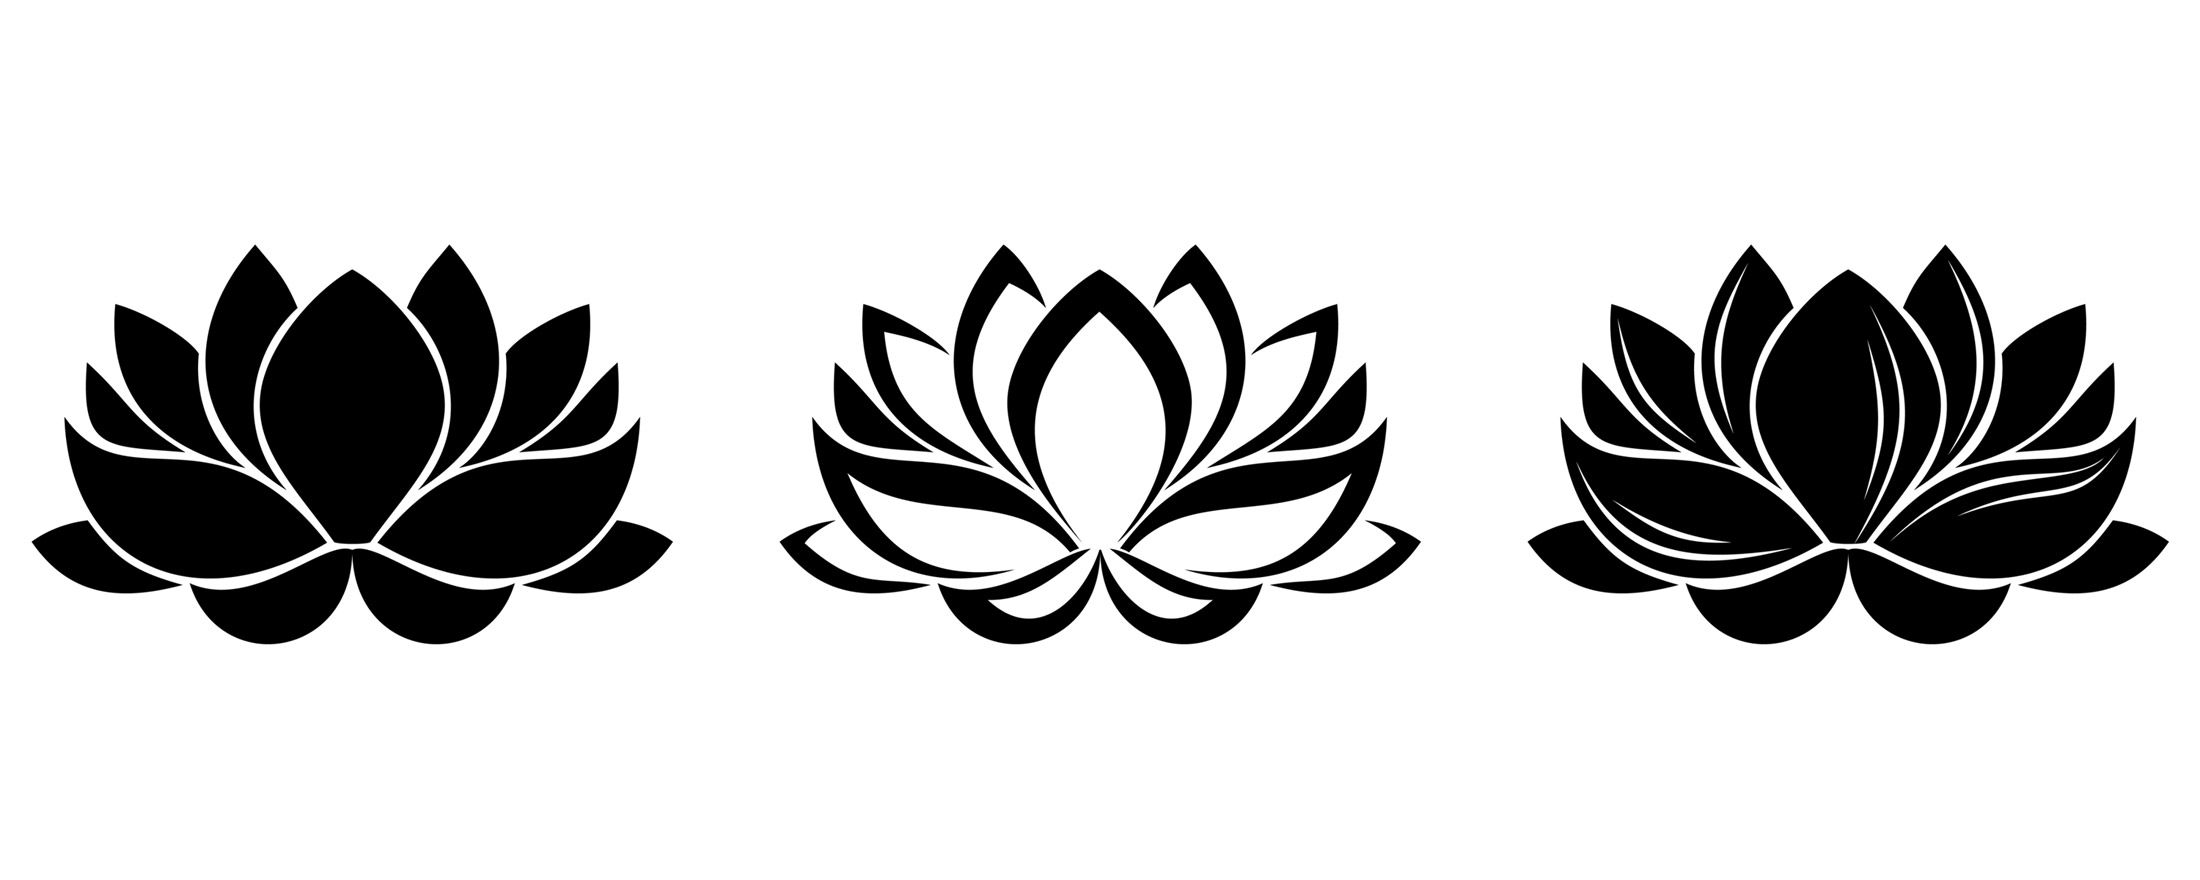 Lotus clipart. Colouring picture of best